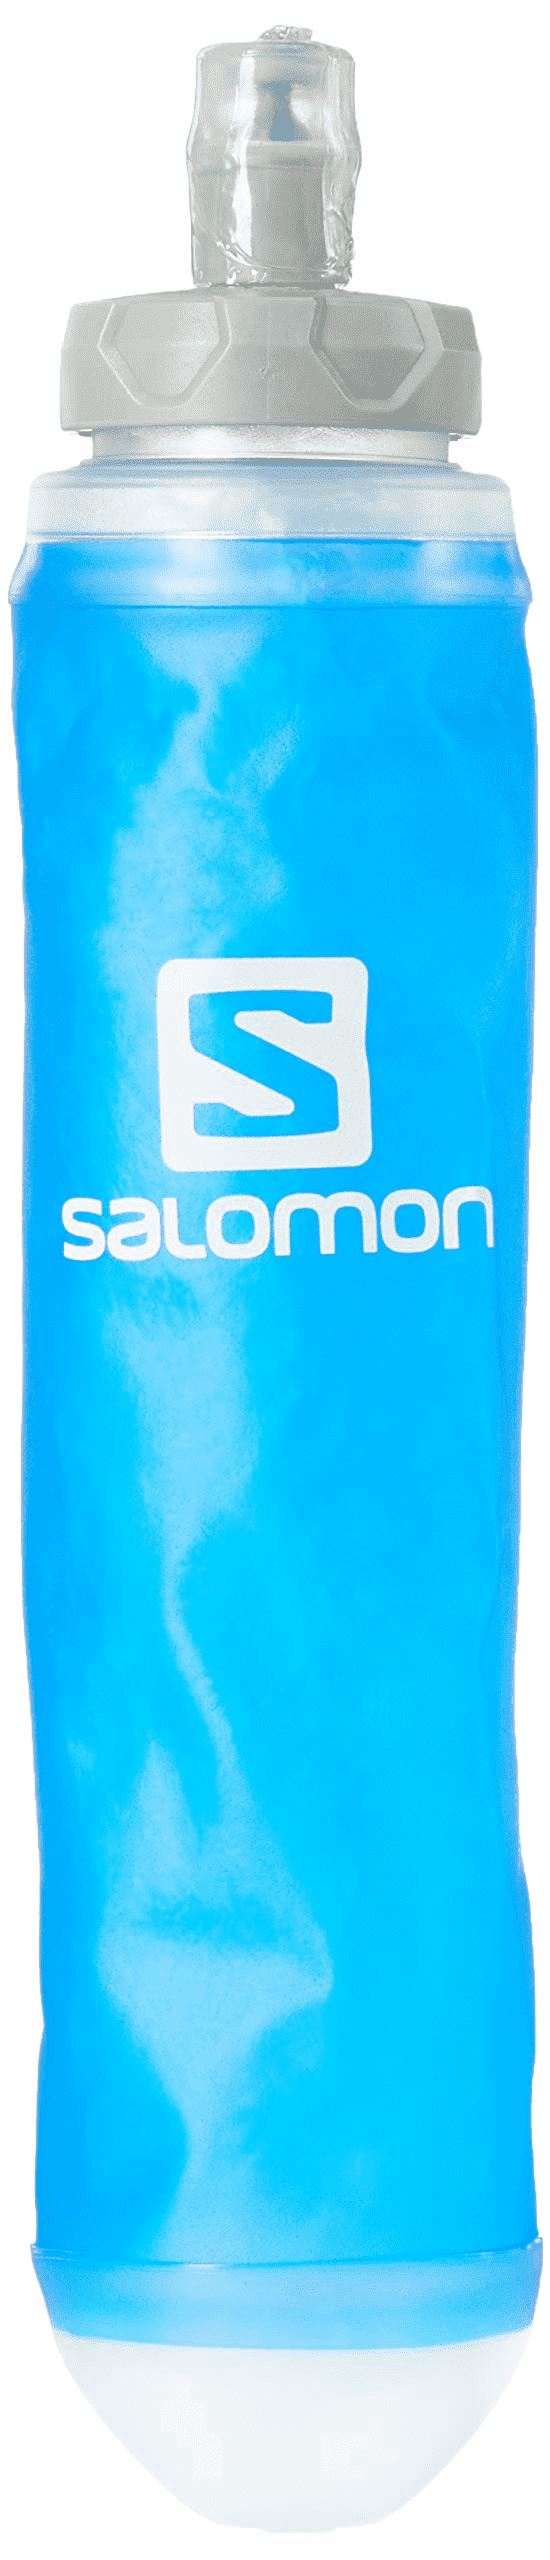 Salomon Soft Flask 500ml/17oz - BlackToe Running Inc. - Toronto Running Specialty Store